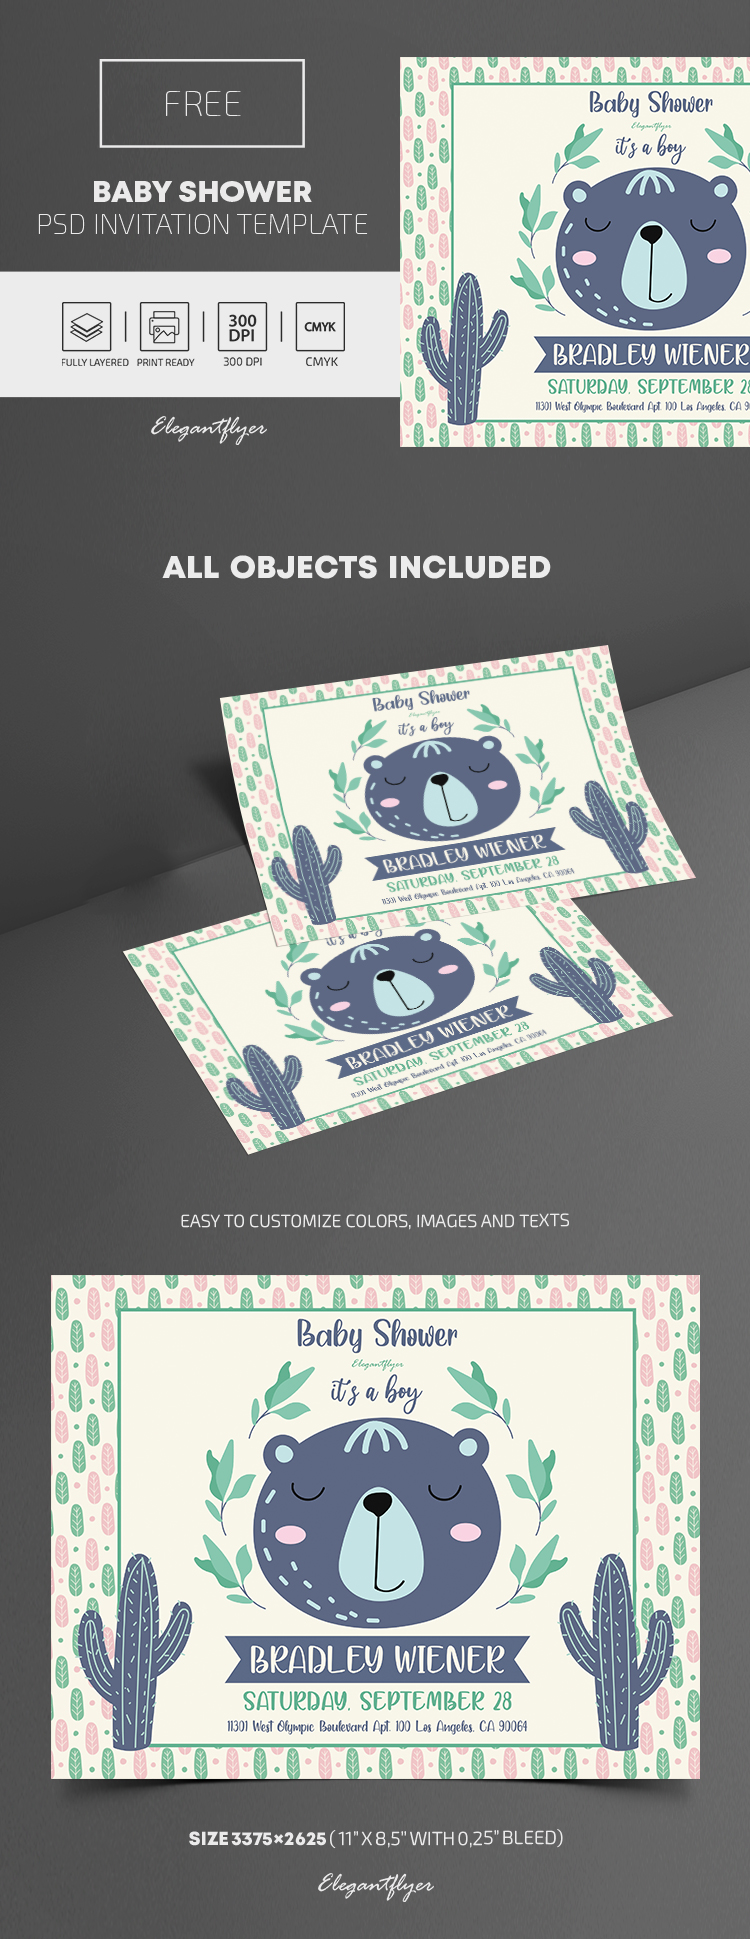 Free Baby Shower Invitation Template in PSD